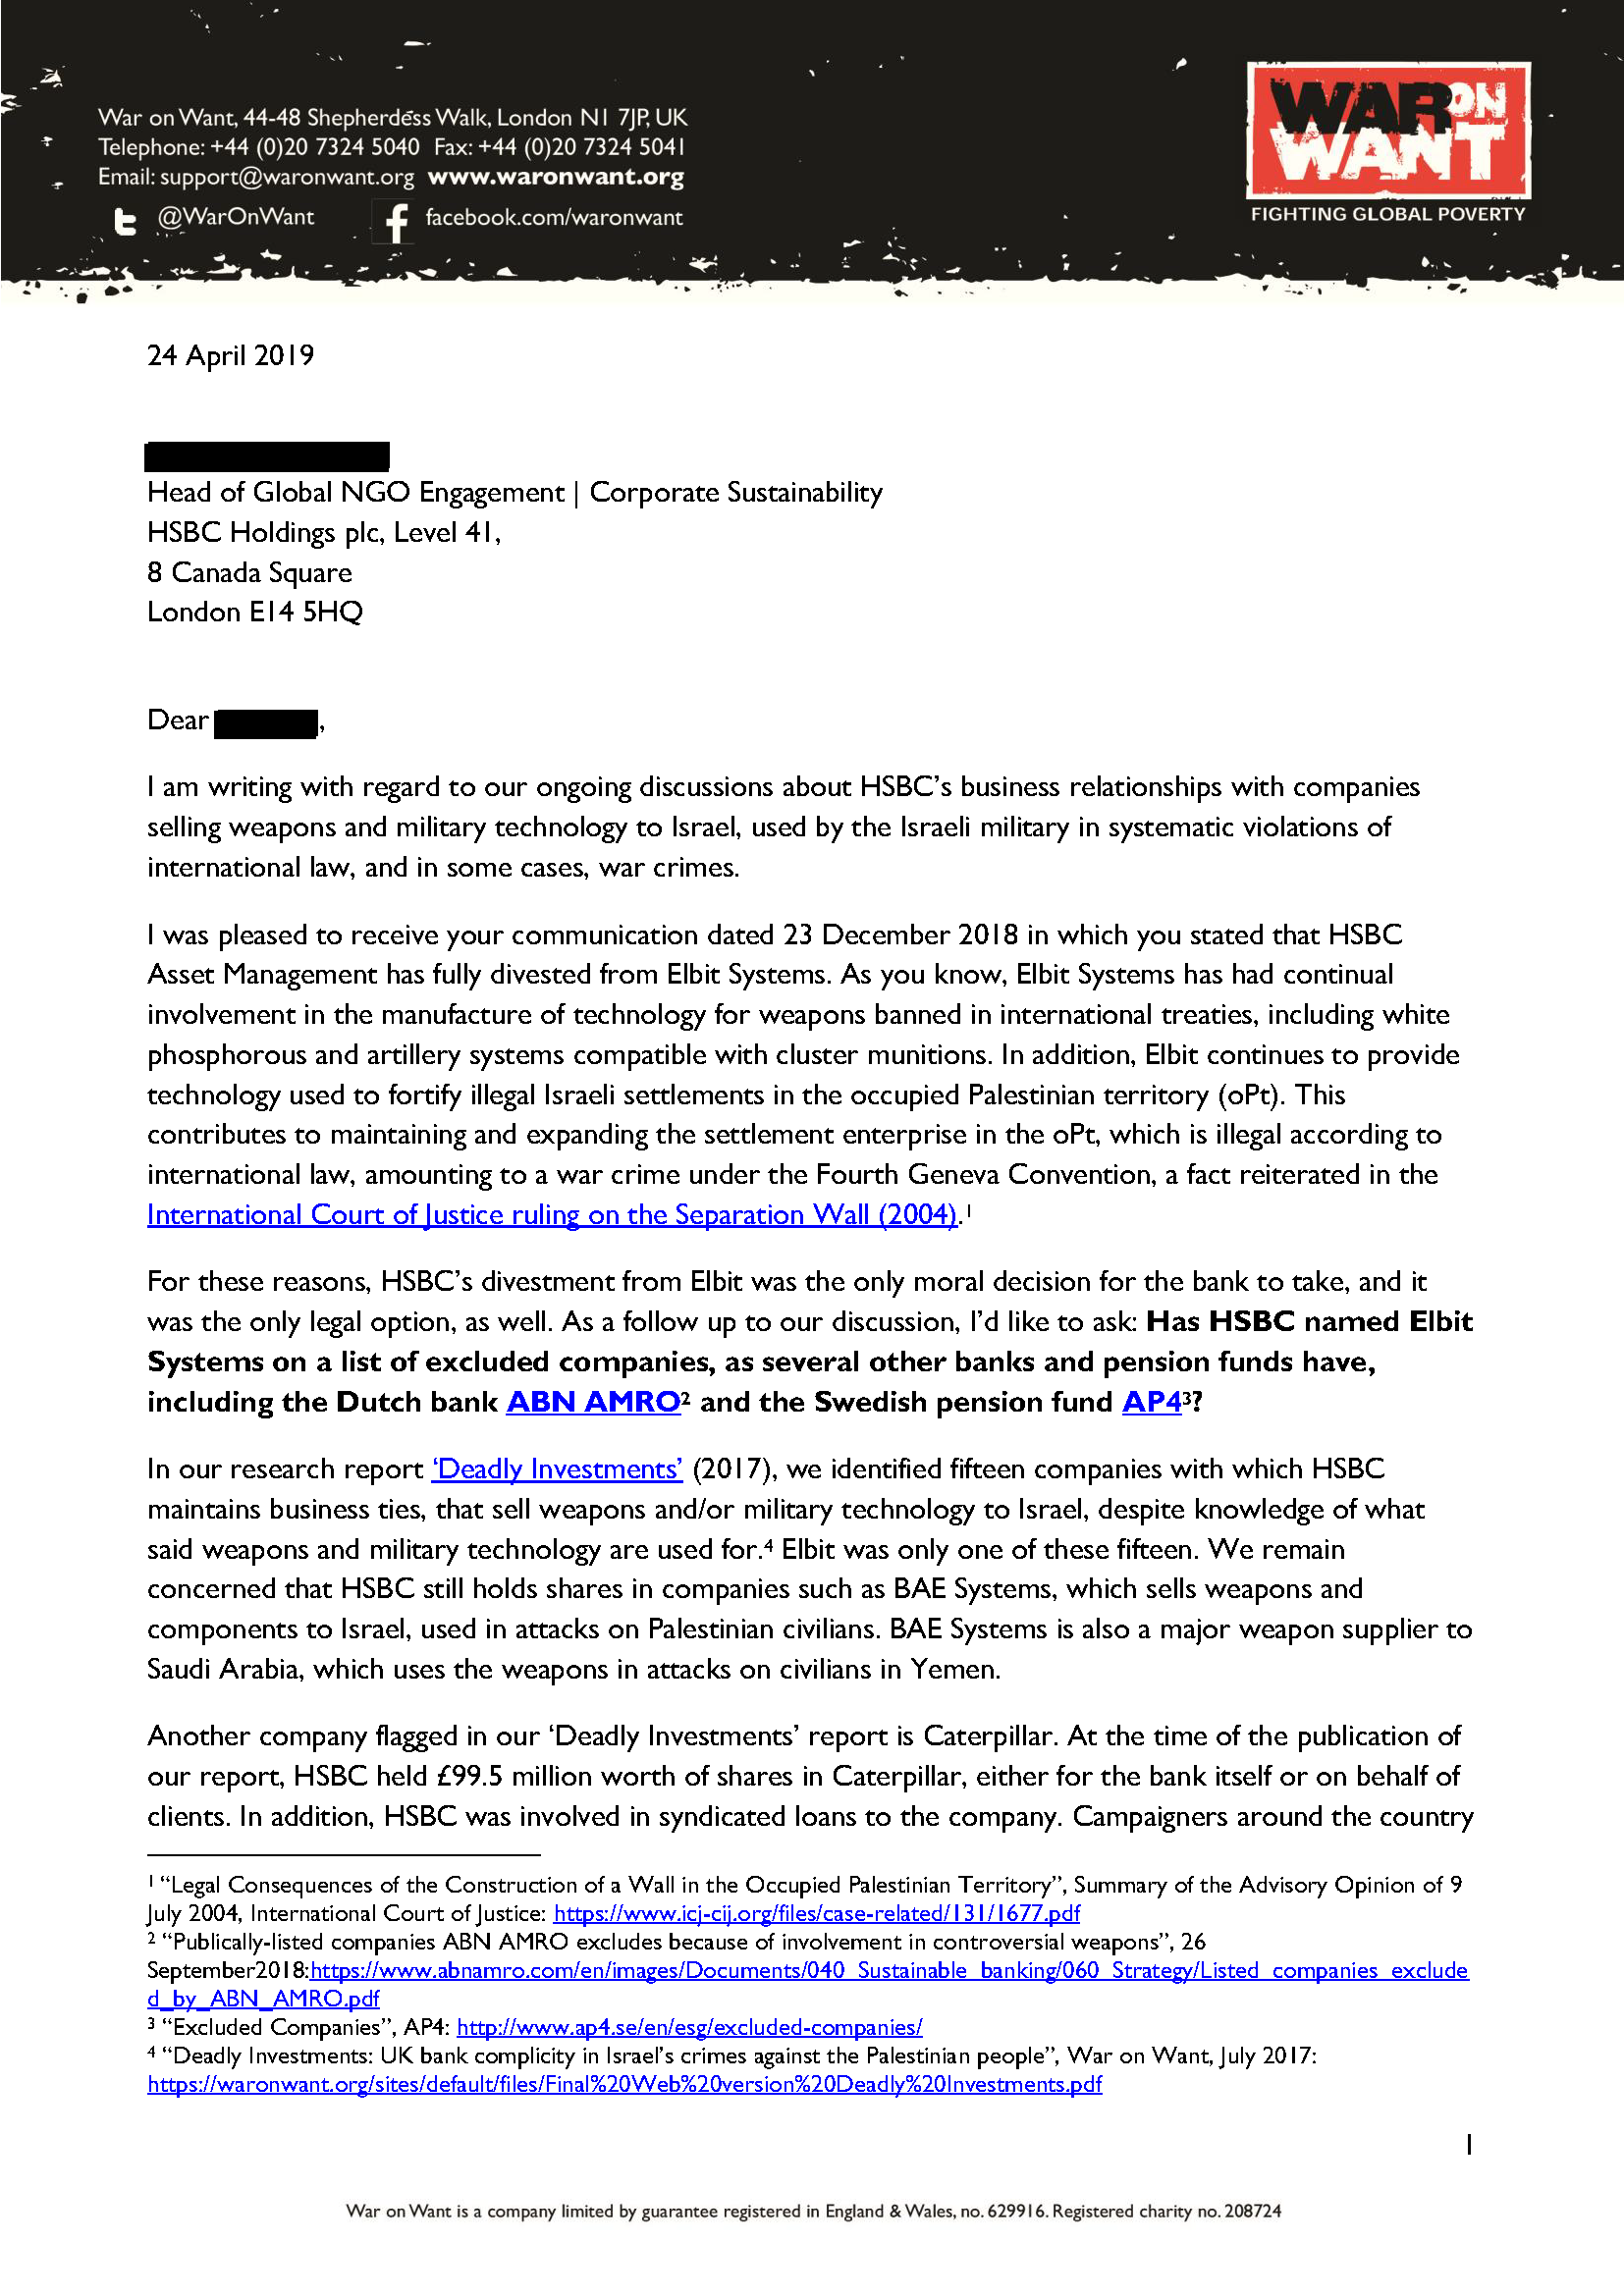 War on Want letter to HSBC over its business ties with